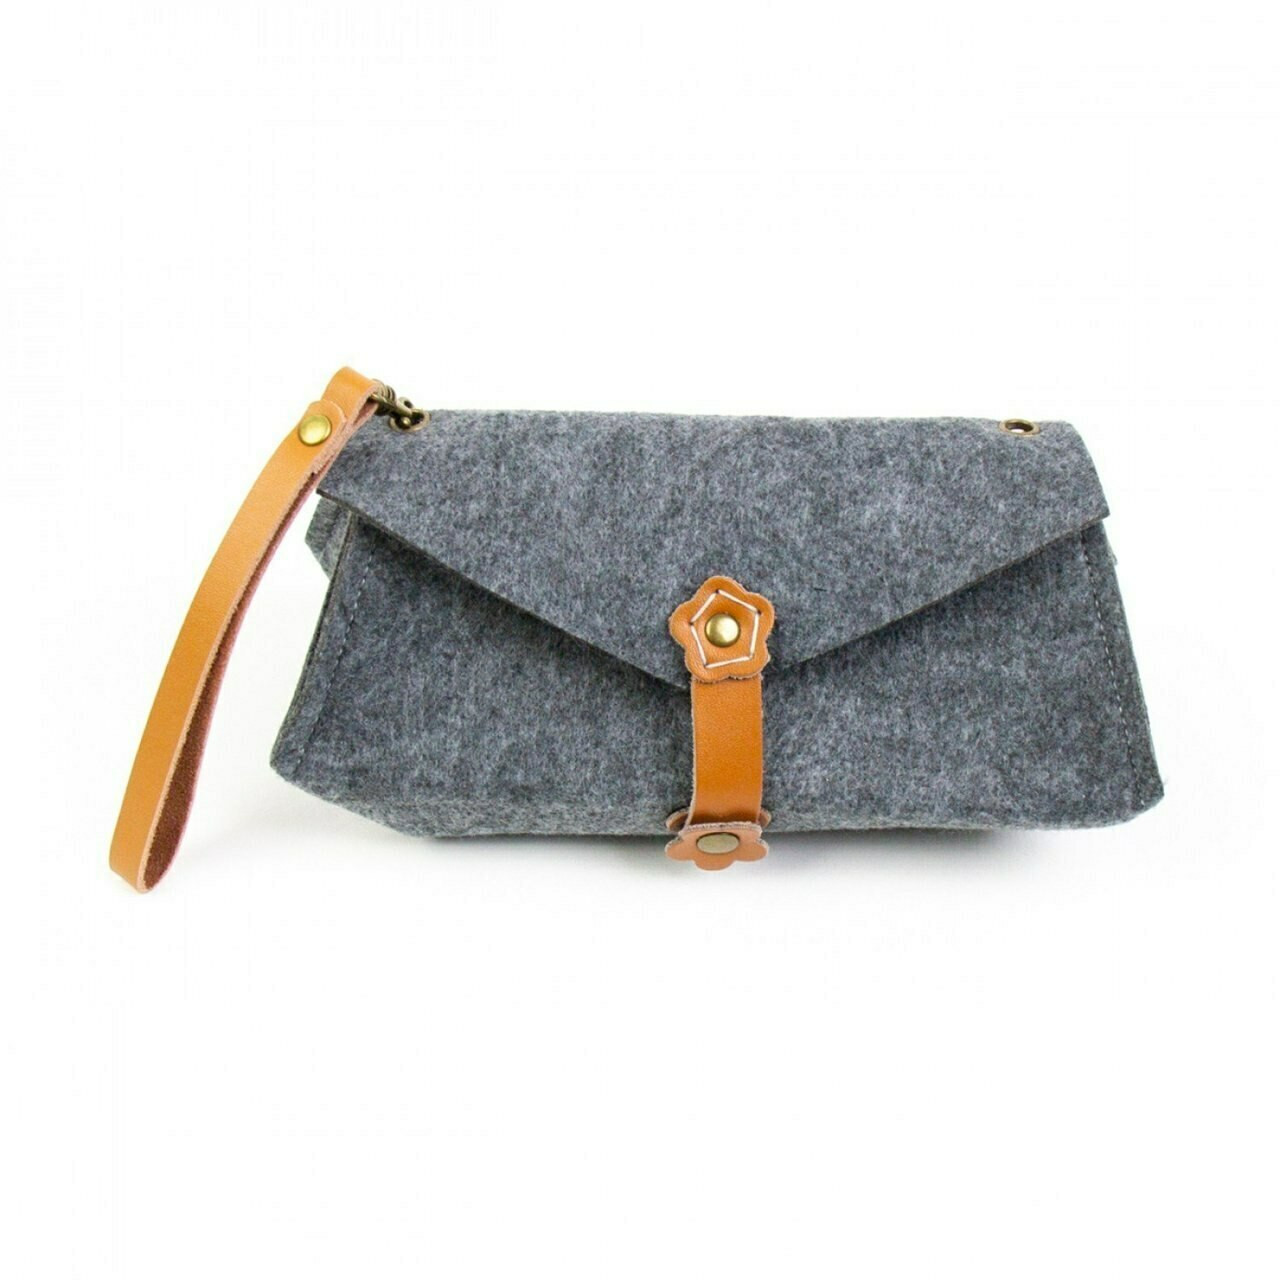 Aster & Anne Felt Bag Kit - Luella Clutch small